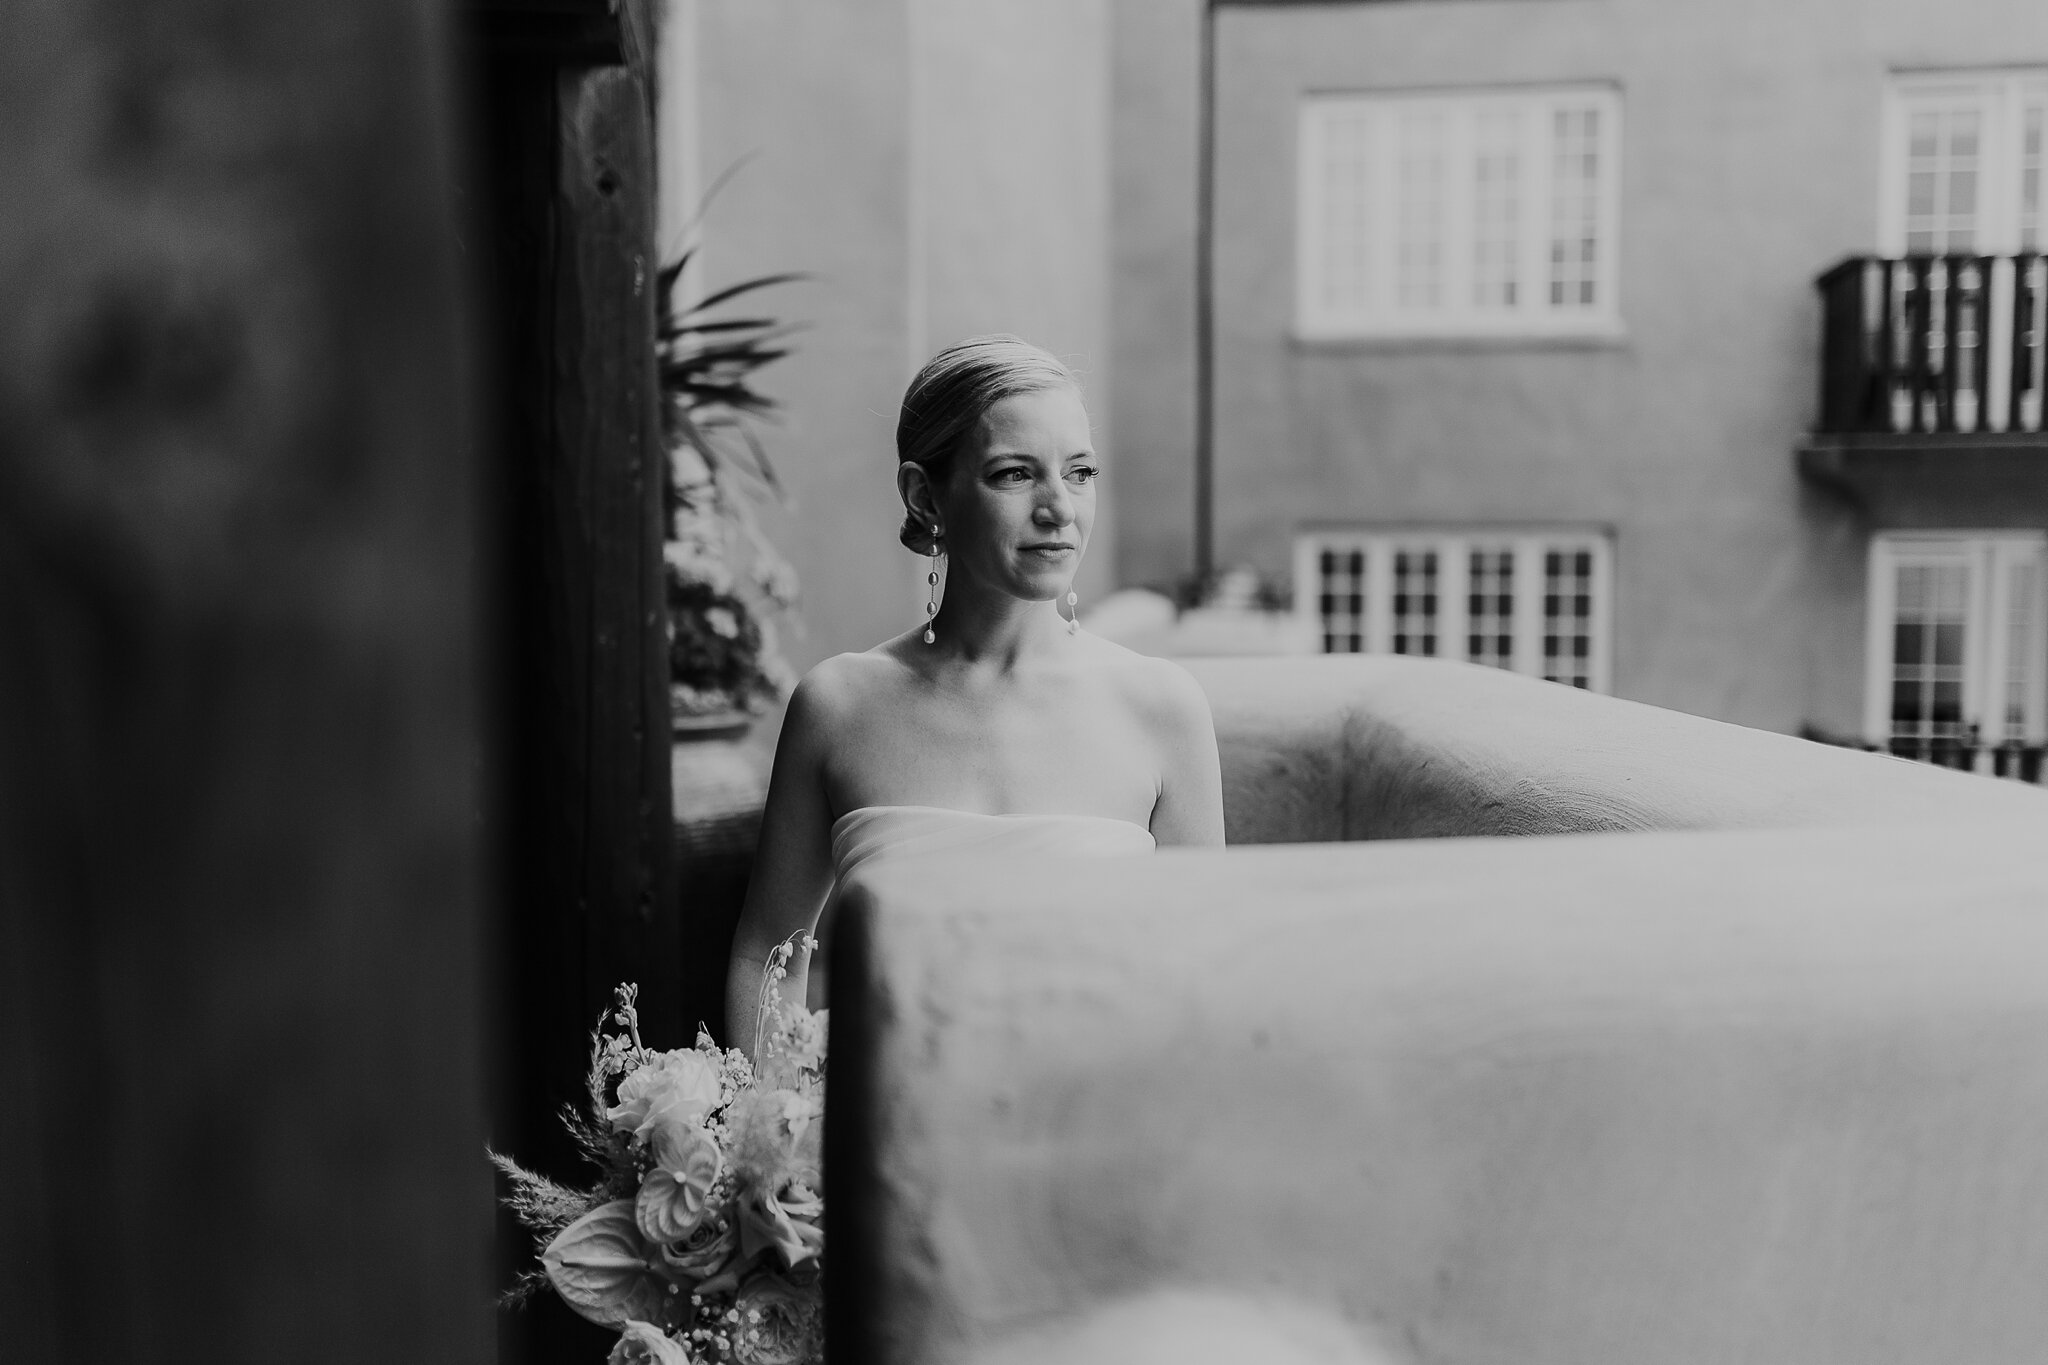 Alicia+lucia+photography+-+albuquerque+wedding+photographer+-+santa+fe+wedding+photography+-+new+mexico+wedding+photographer+-+new+mexico+wedding+-+la+fonda+wedding+-+la+fonda+on+the+plaza+-+santa+fe+wedding+-+brooklyn+bride_0075.jpg